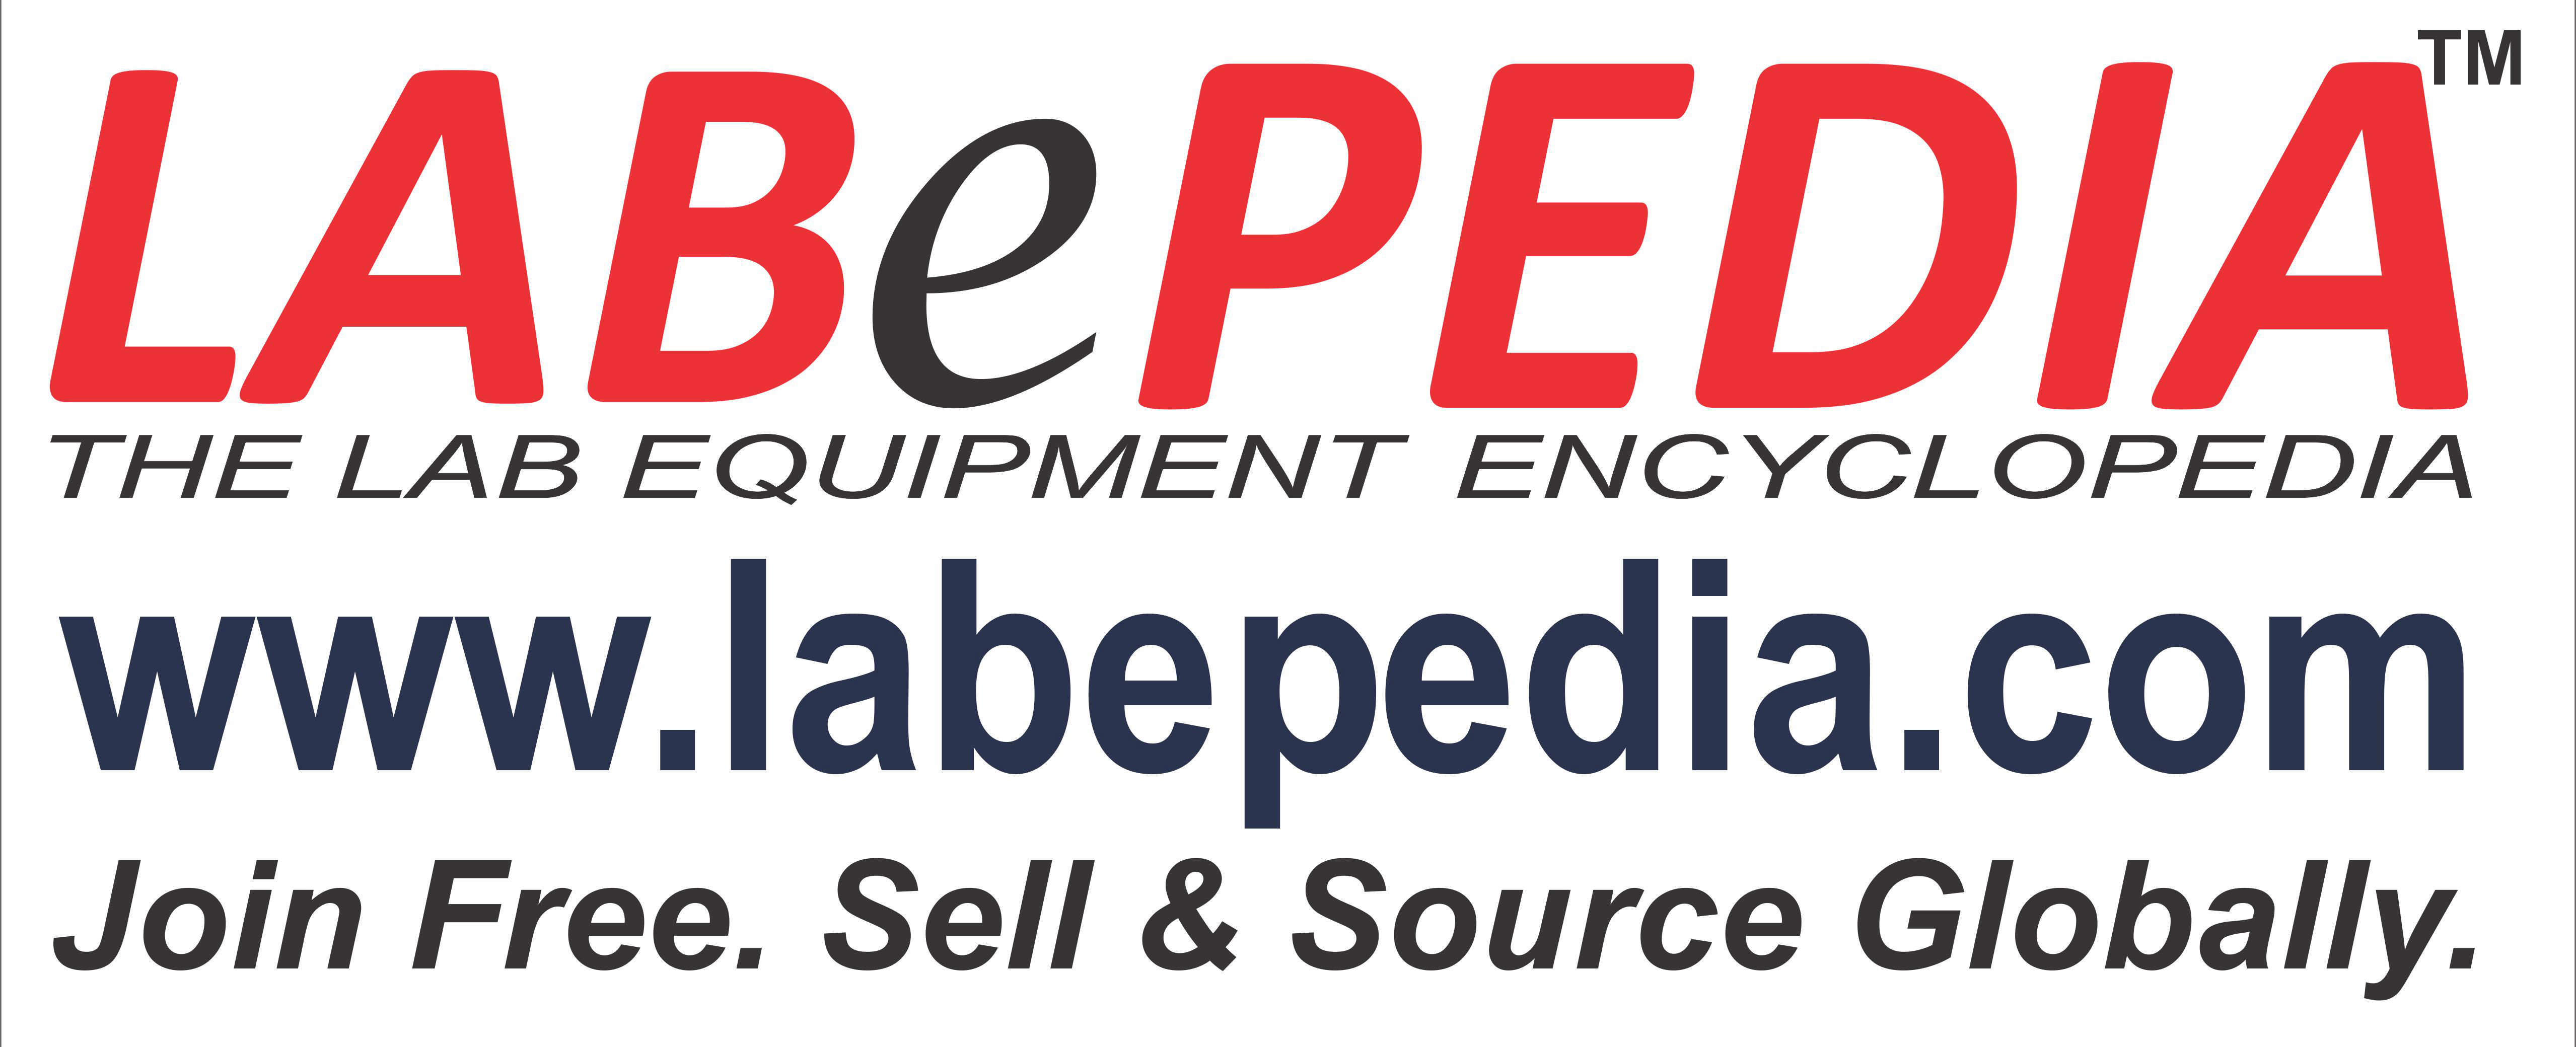 LABePEDIA is a Global B2B Platform for selling, searching, and sourcing laboratory and scientific equipment. Suppliers & Buyers of laboratory and scientific equipment use this platform to promote and source laboratory equipment used in education, industry and scientific research.